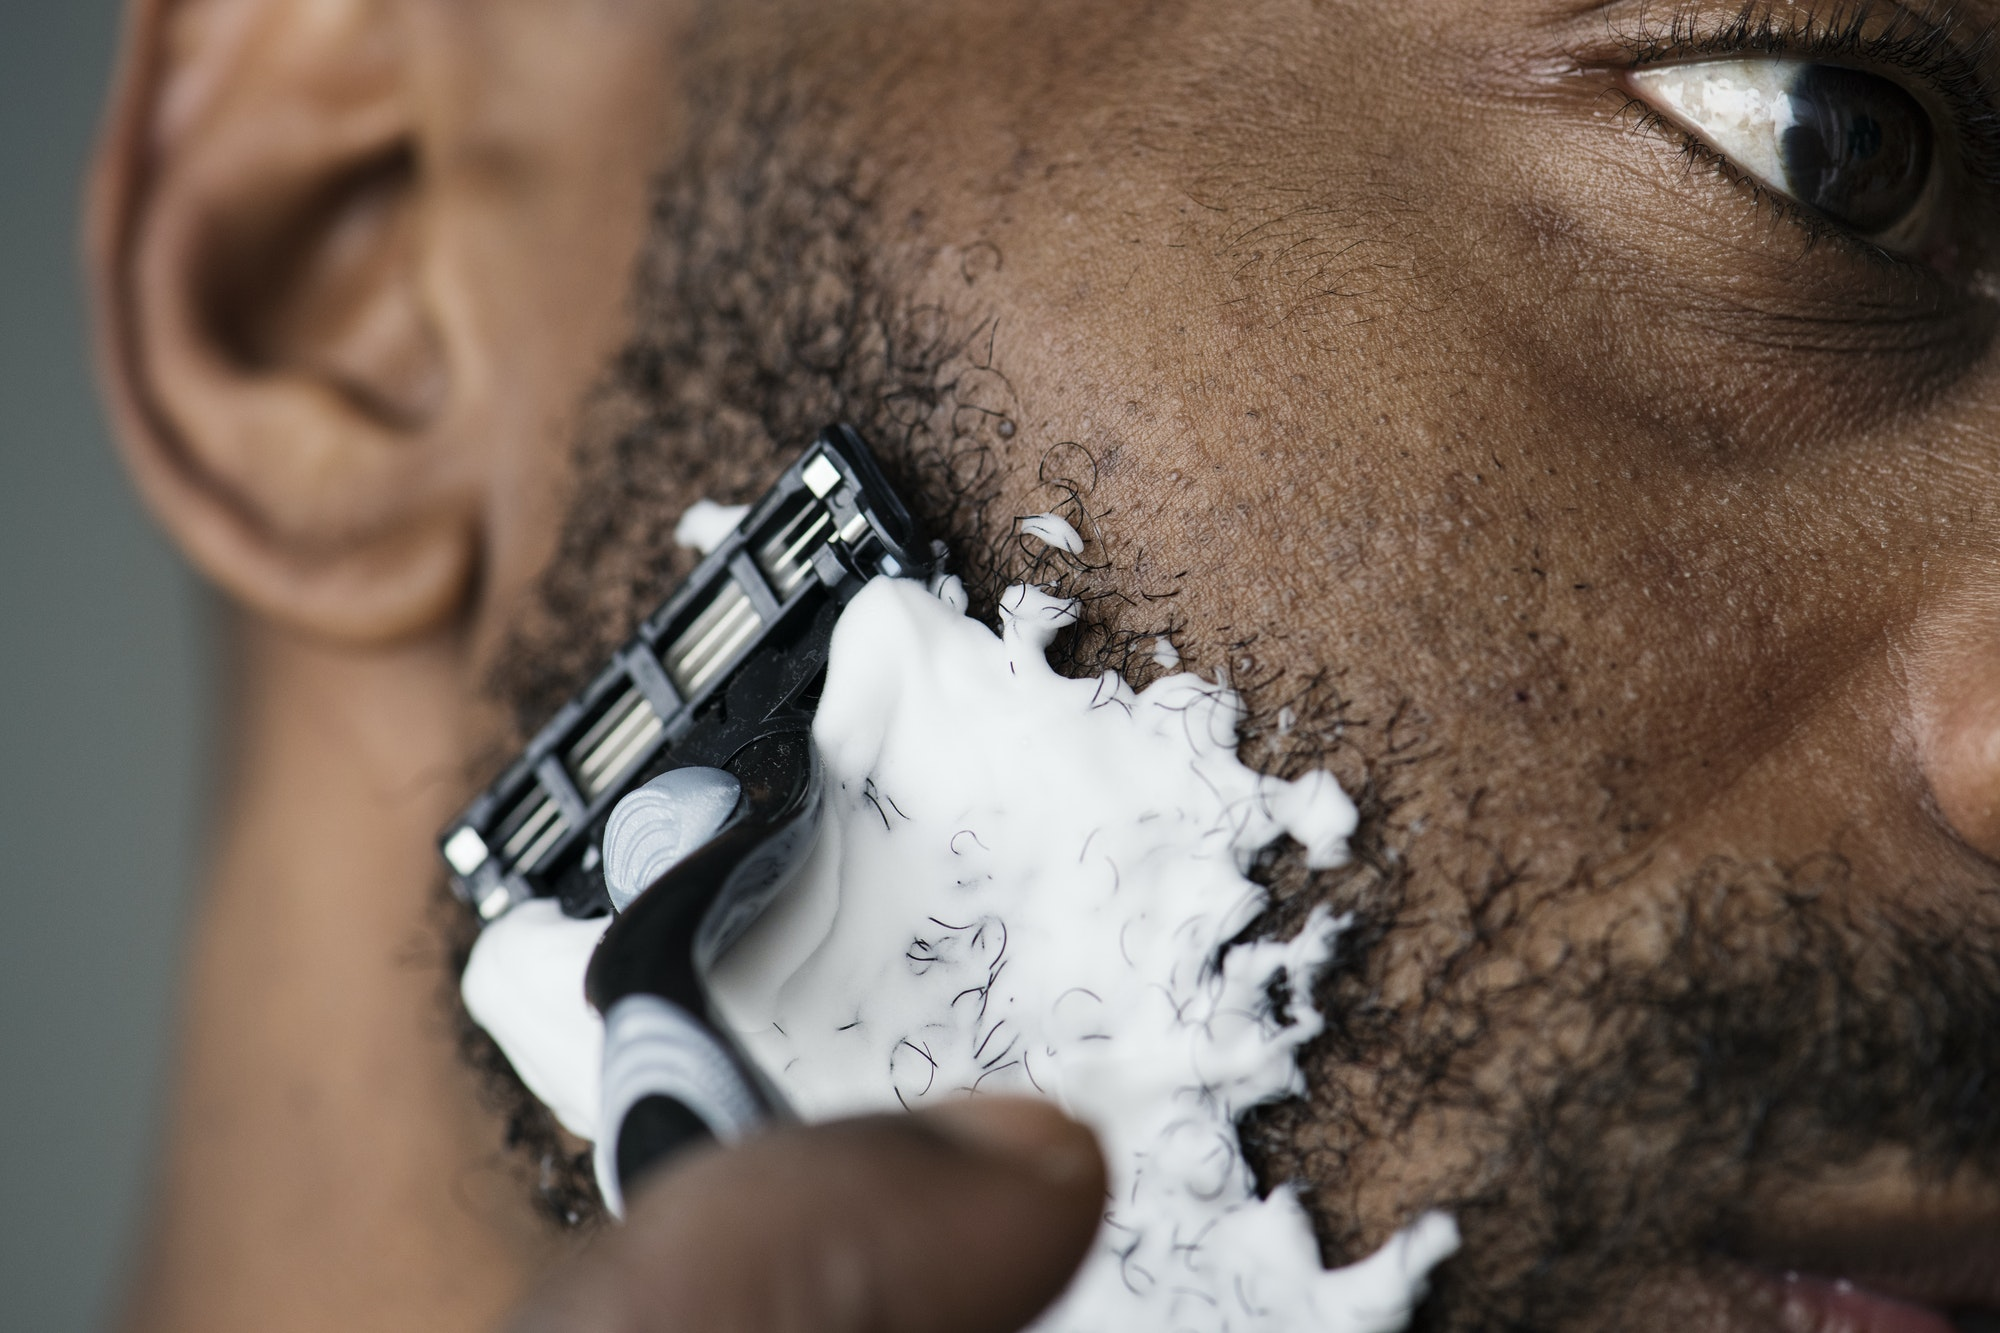 Black man shaving his beard